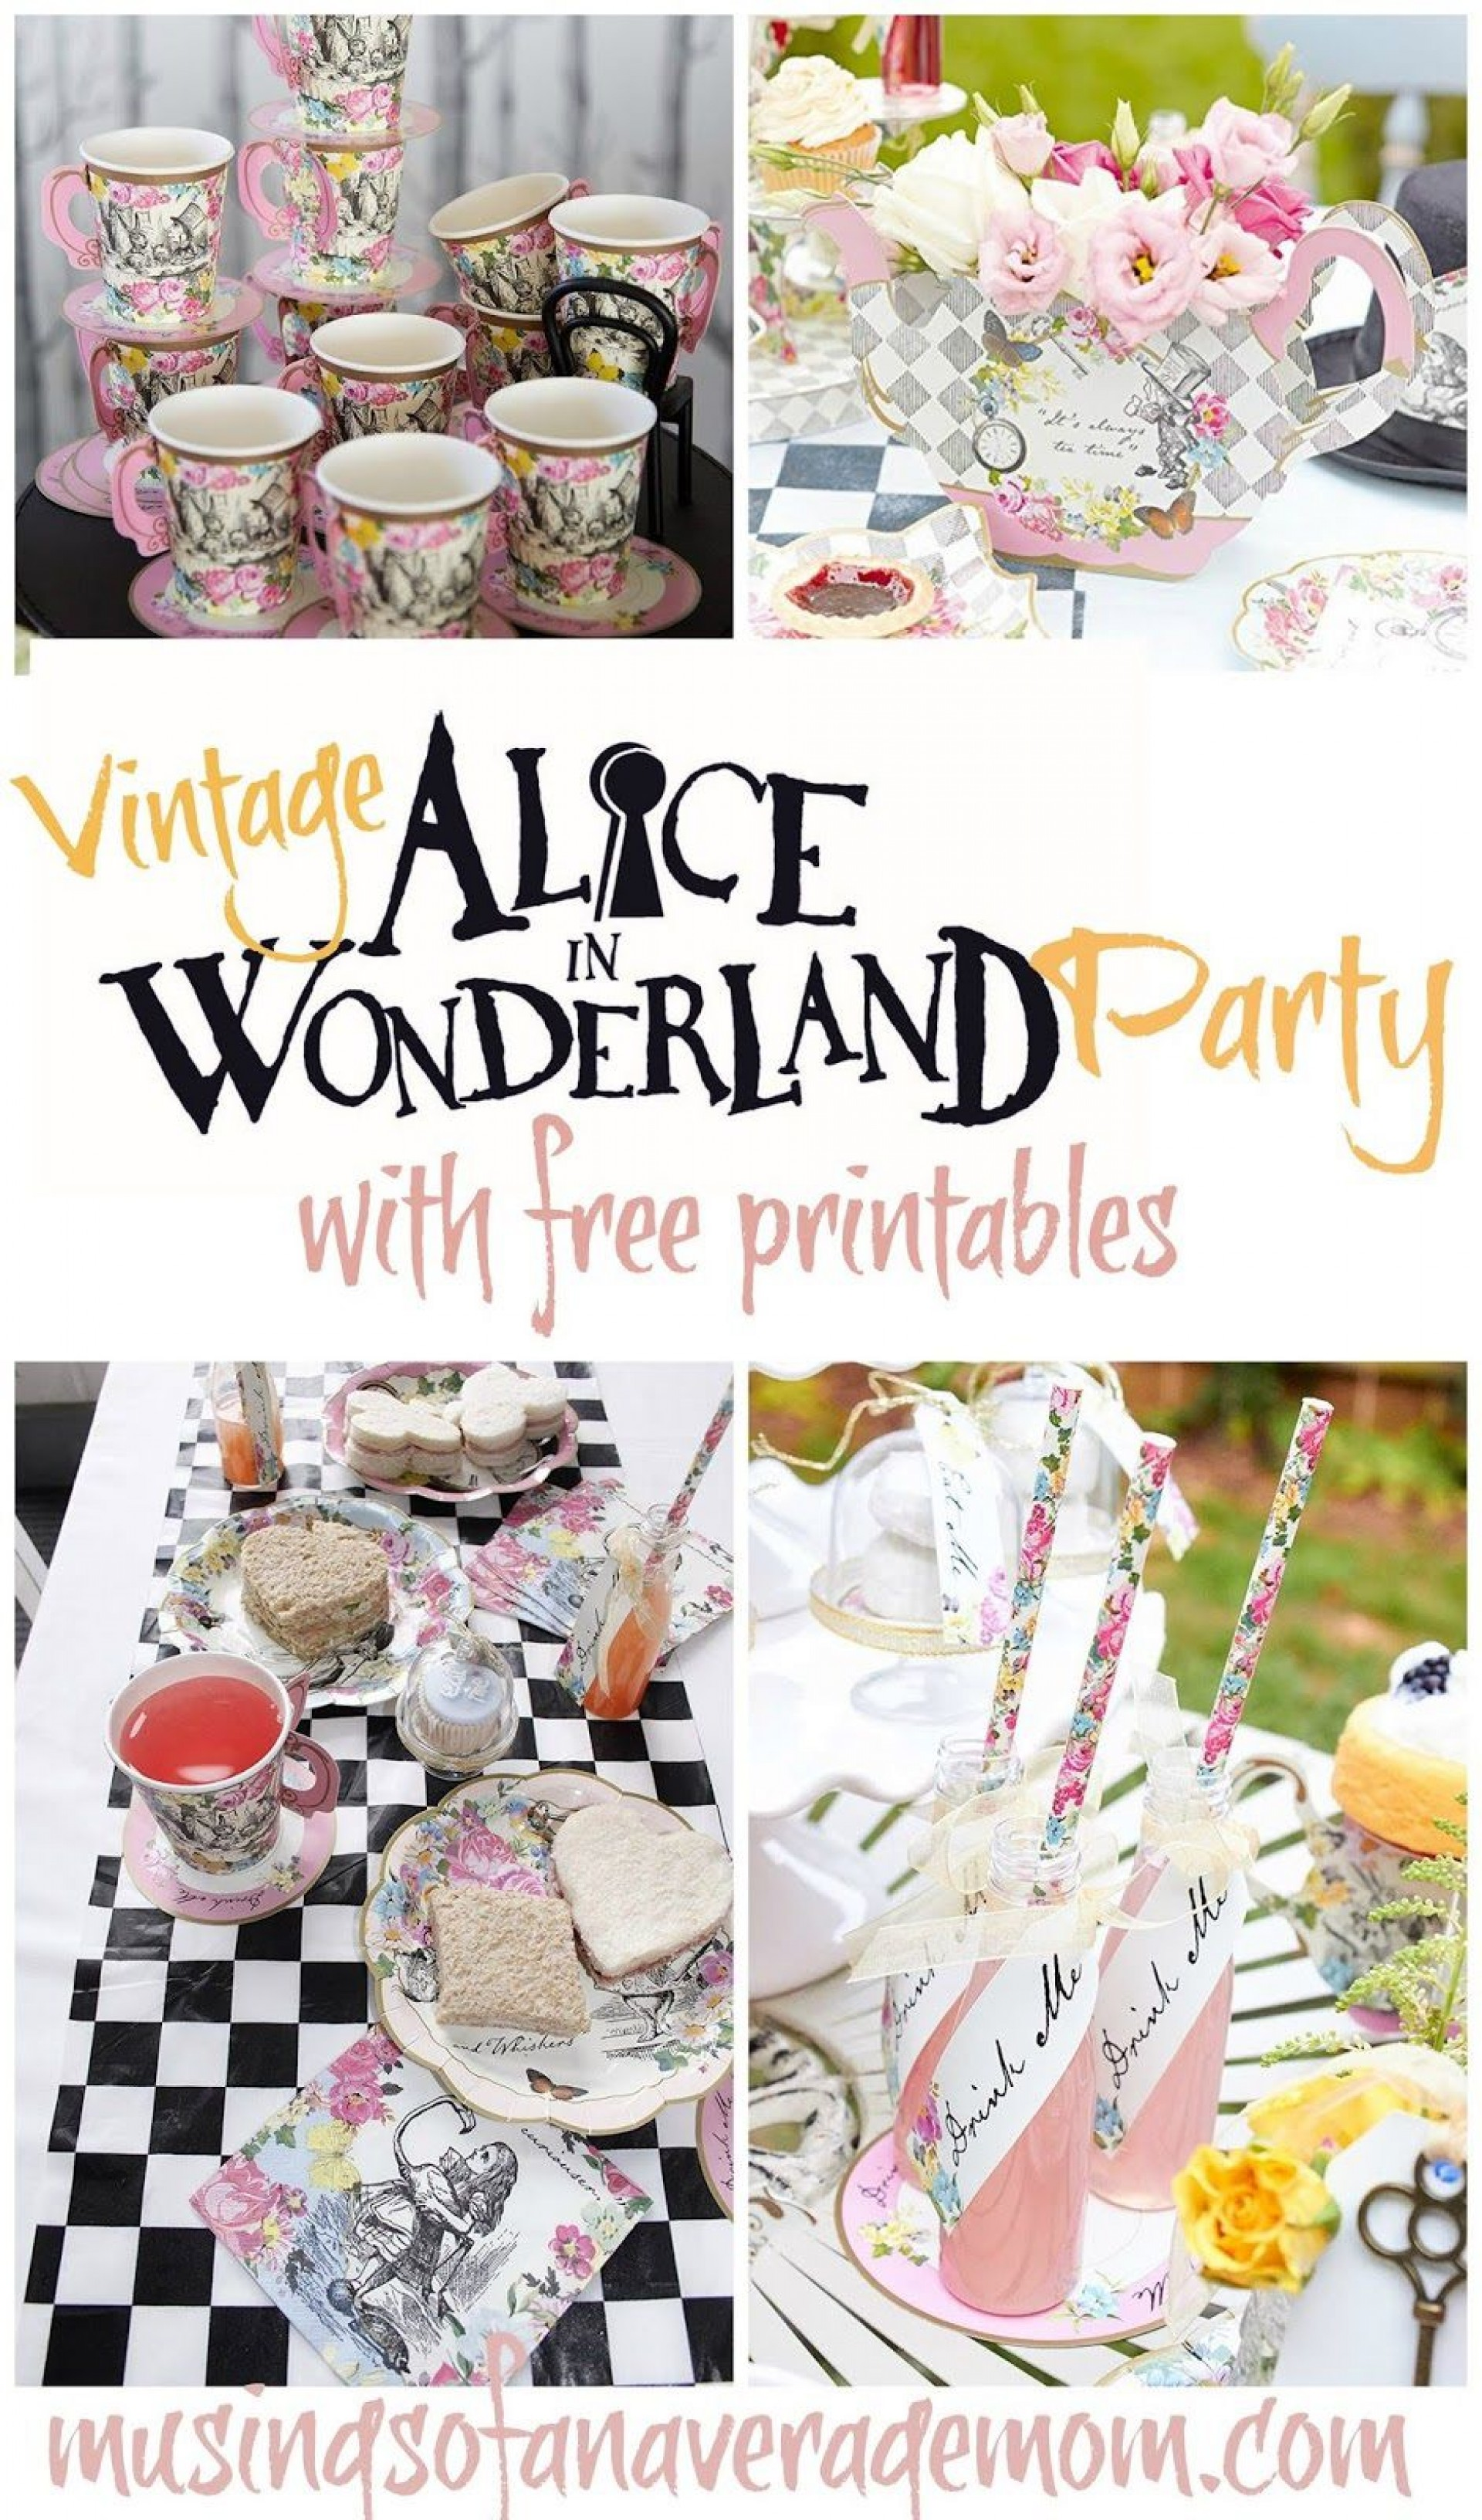 008 Wonderful Alice In Wonderland Party Template Picture  Templates Invitation Free1920